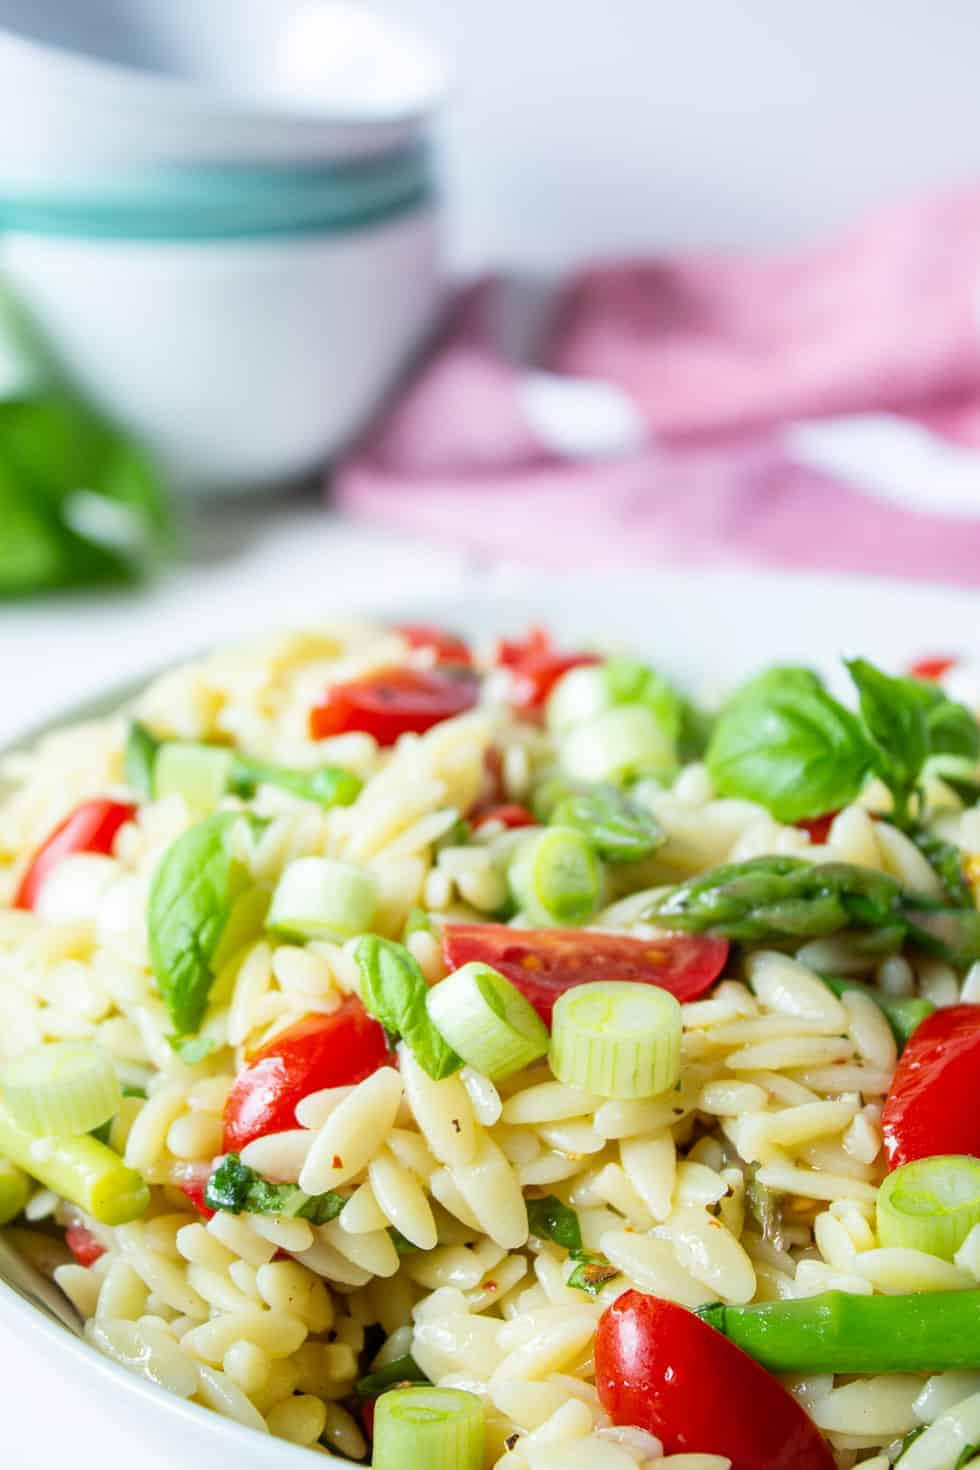 Asparagus, tomatoes and pasta in a bowl.